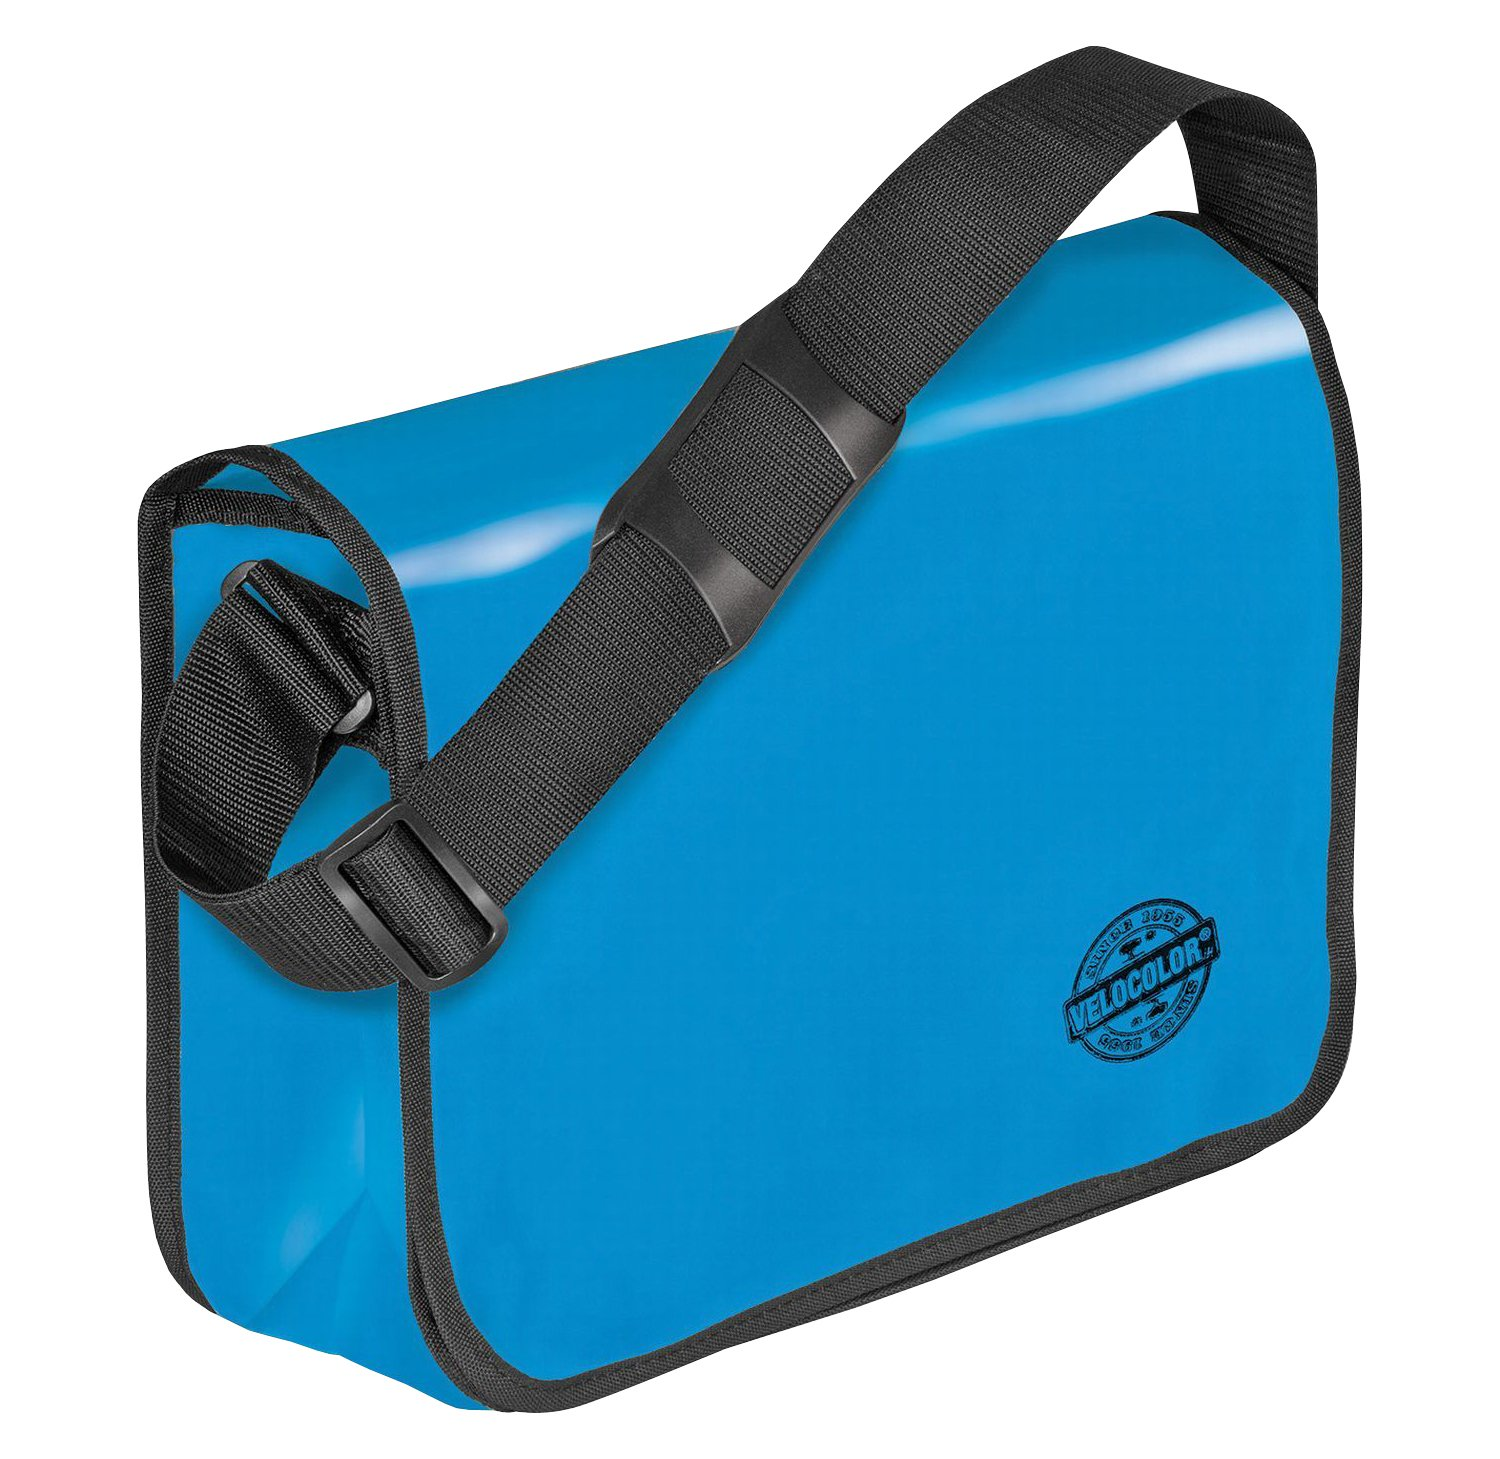 Veloflex 7000351 Shoulder Bag Velocolor Umhängetasche, Blau